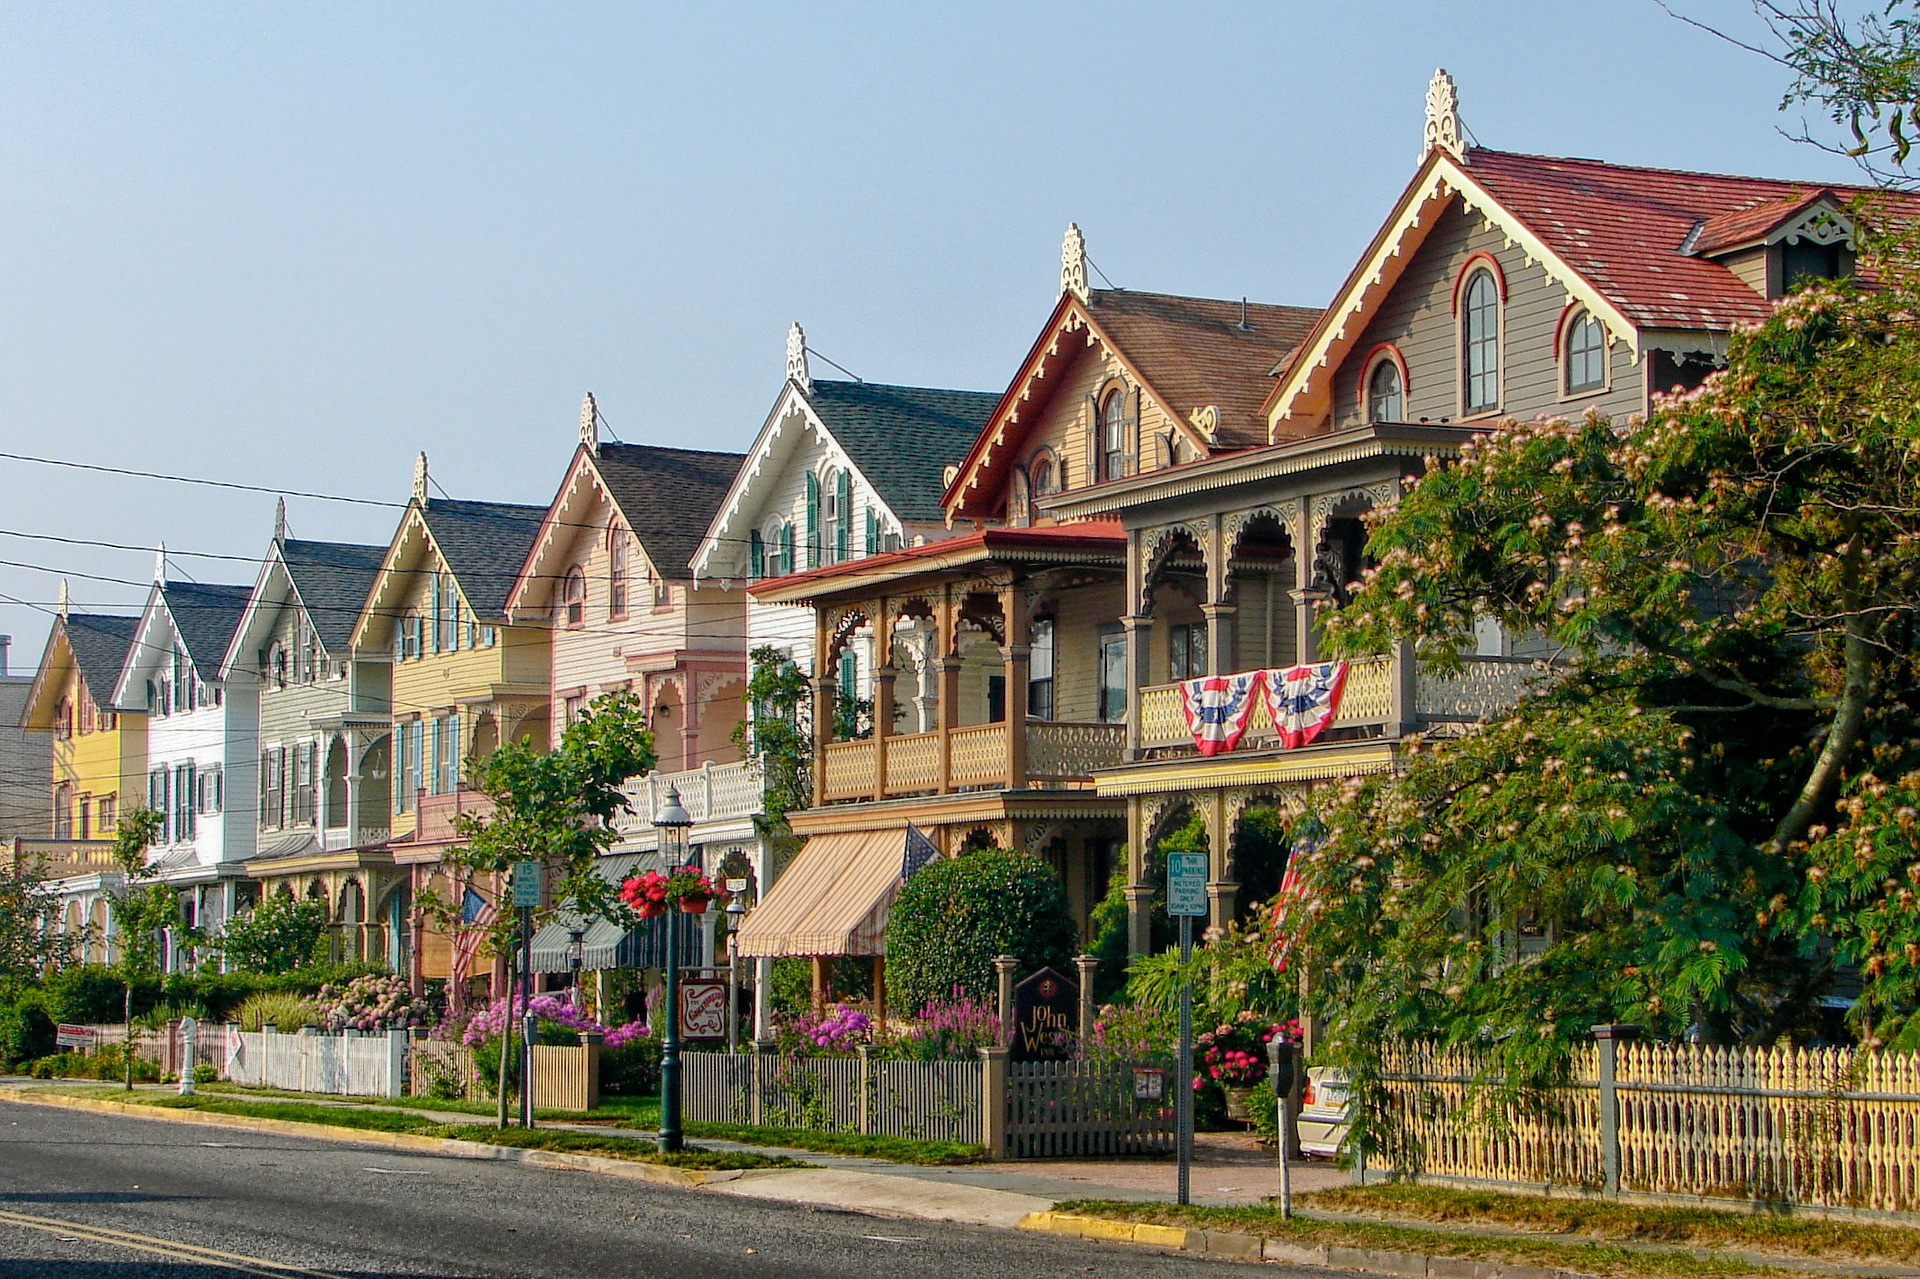 Cape May oozes with charm